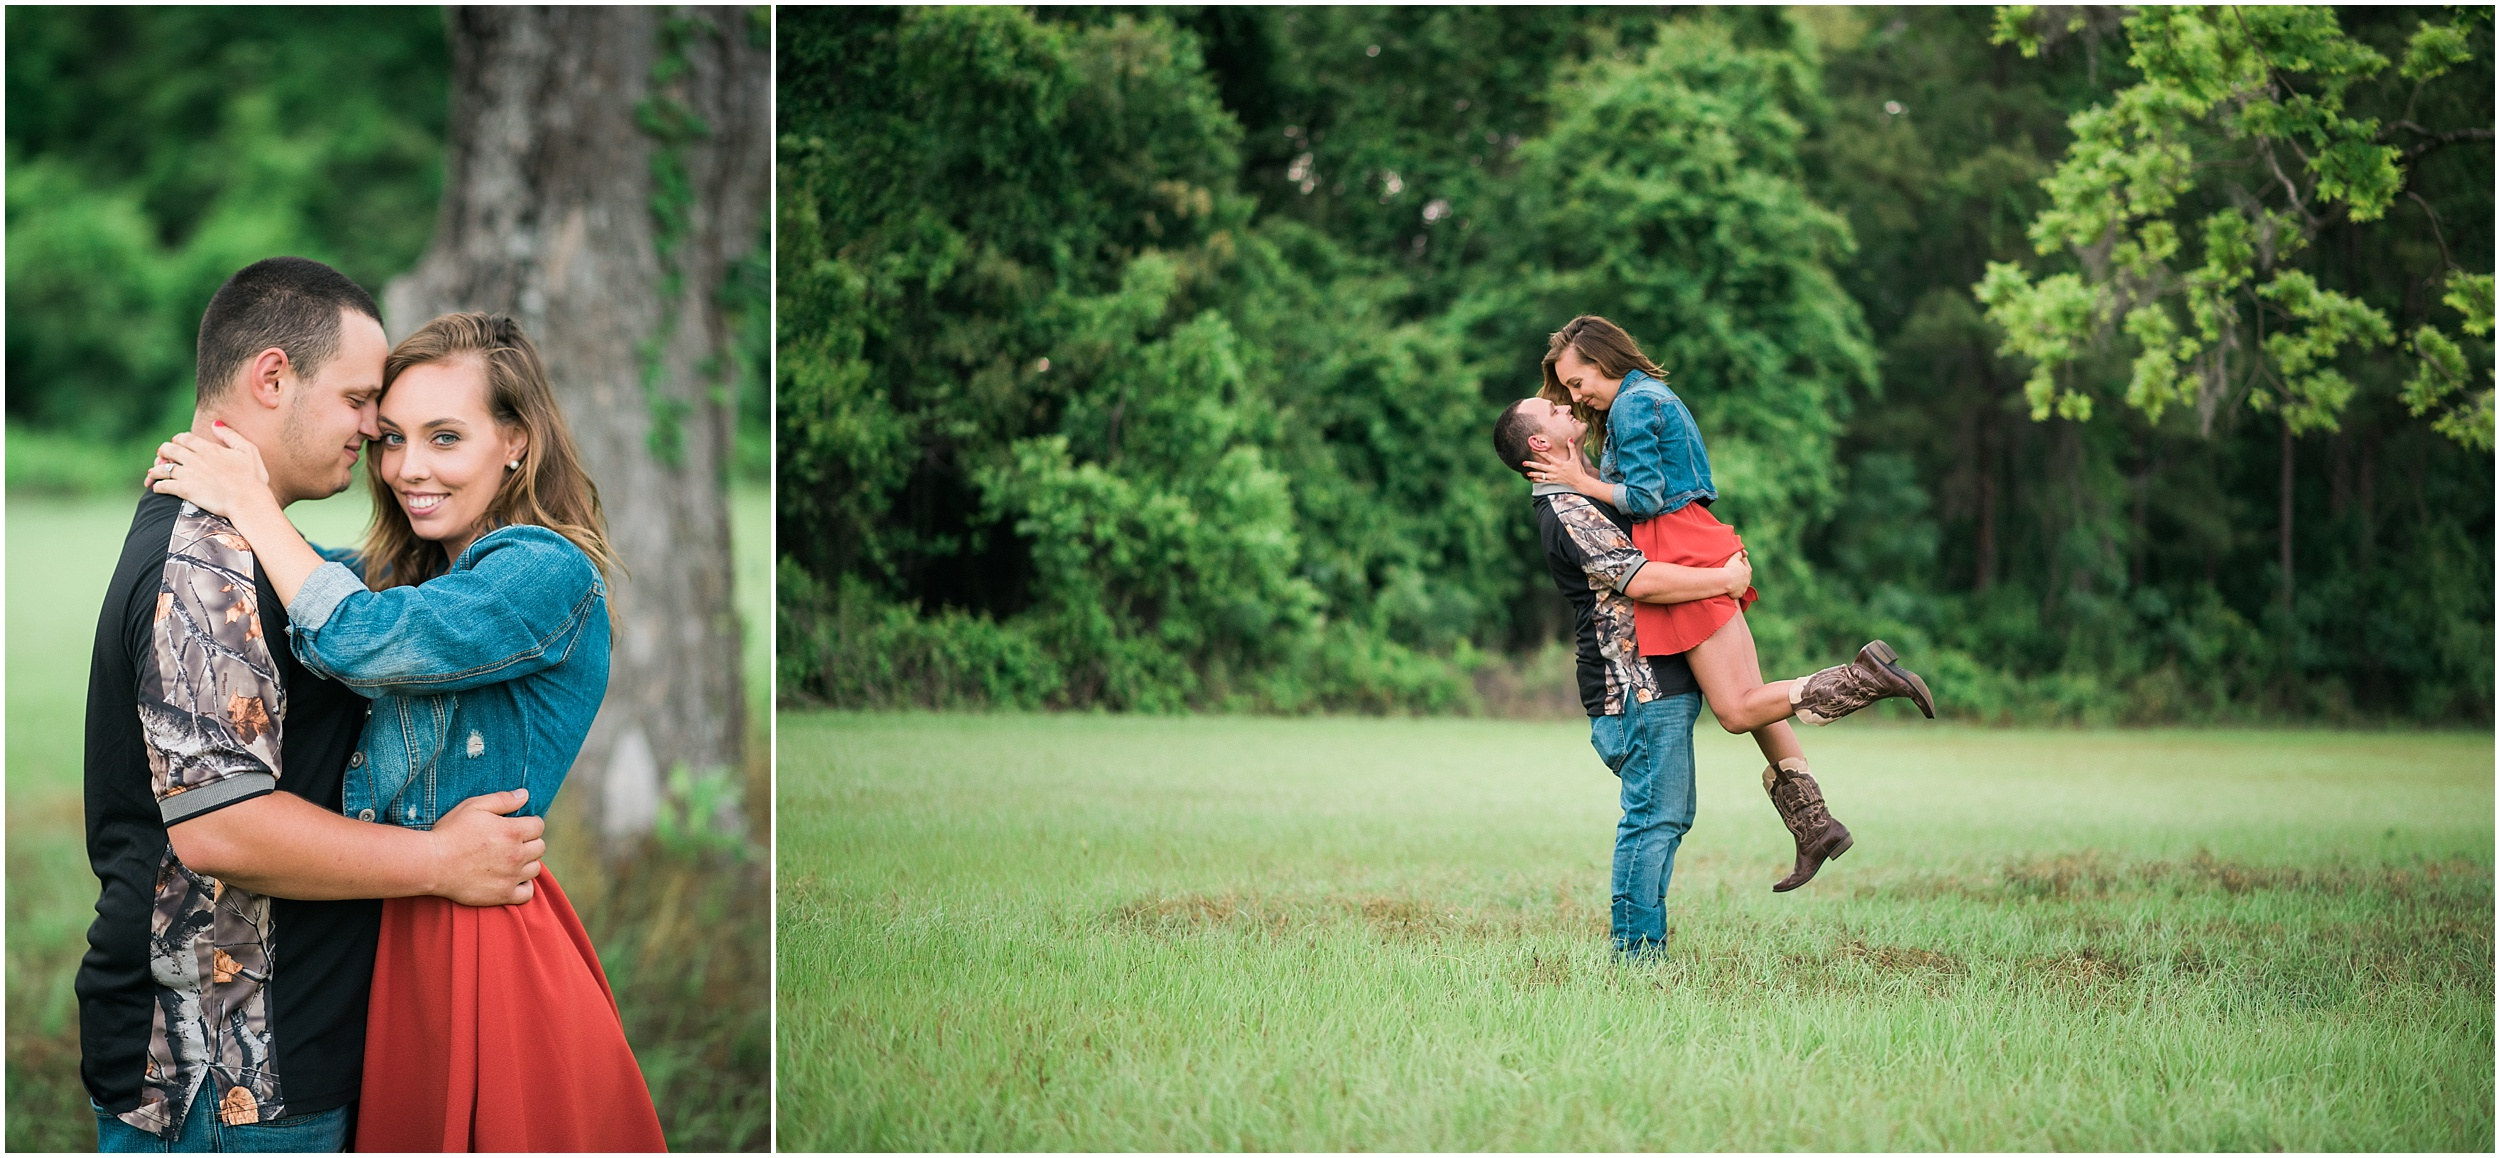 Haley & Kyle Engagement Photoshoot in J.R Alford Greenway, Tallahassee FL_0004.jpg